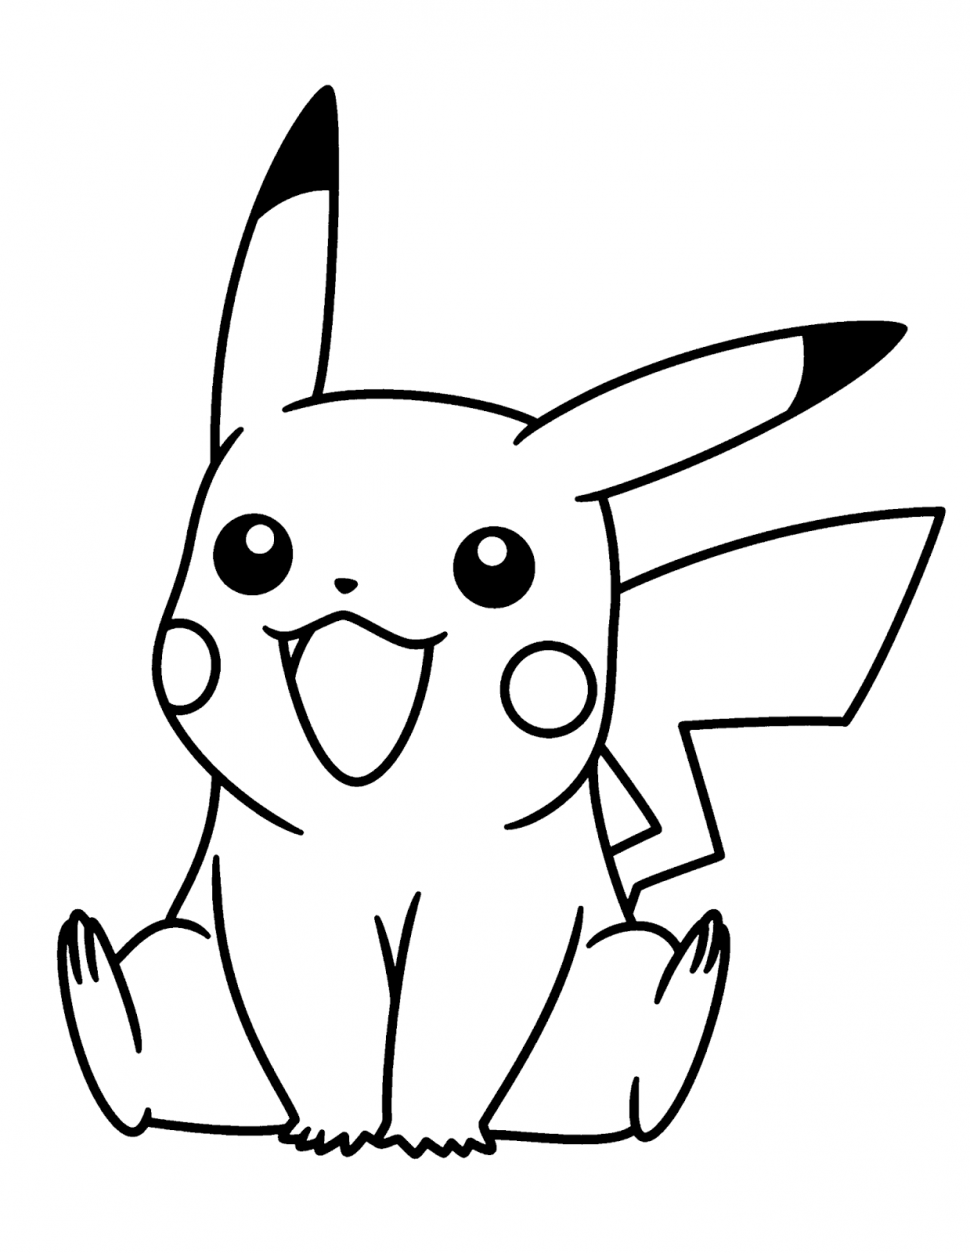 Resource image intended for printable pikachu